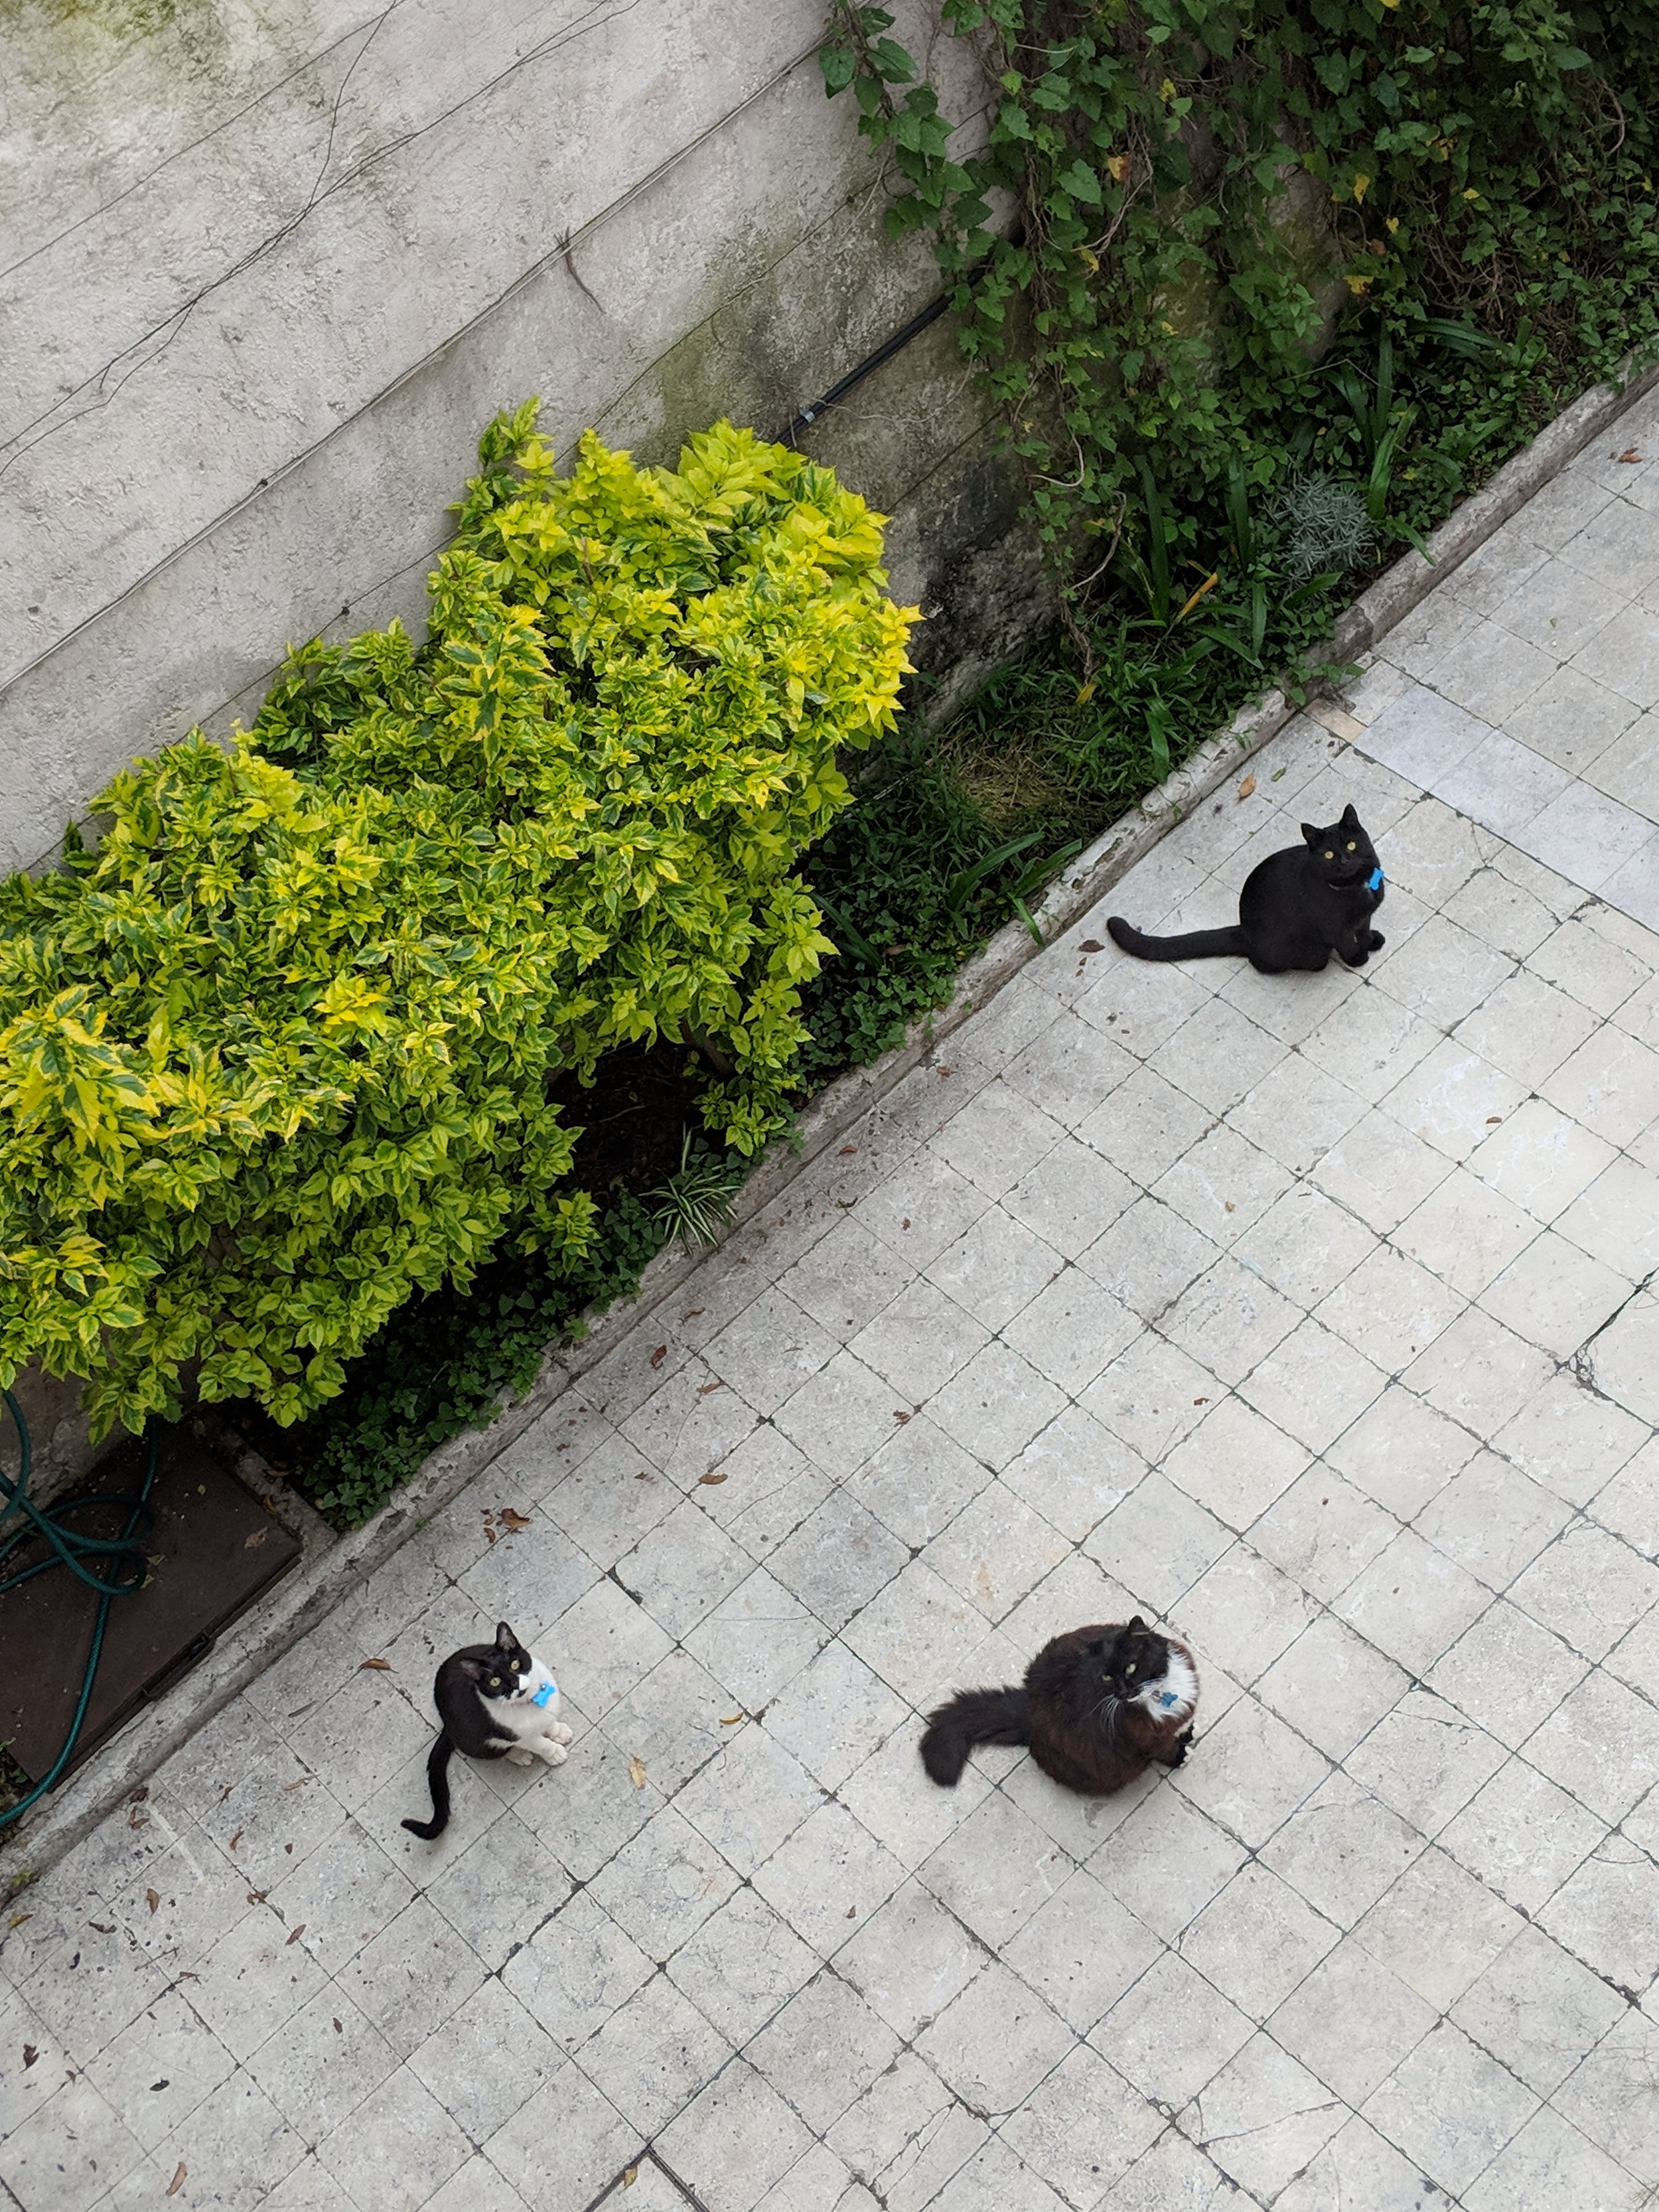 The team of rivals—from left to right, Mister Grant, Parker, and Elliott—sunning on the patio at home in Coyoacán, Mexico City